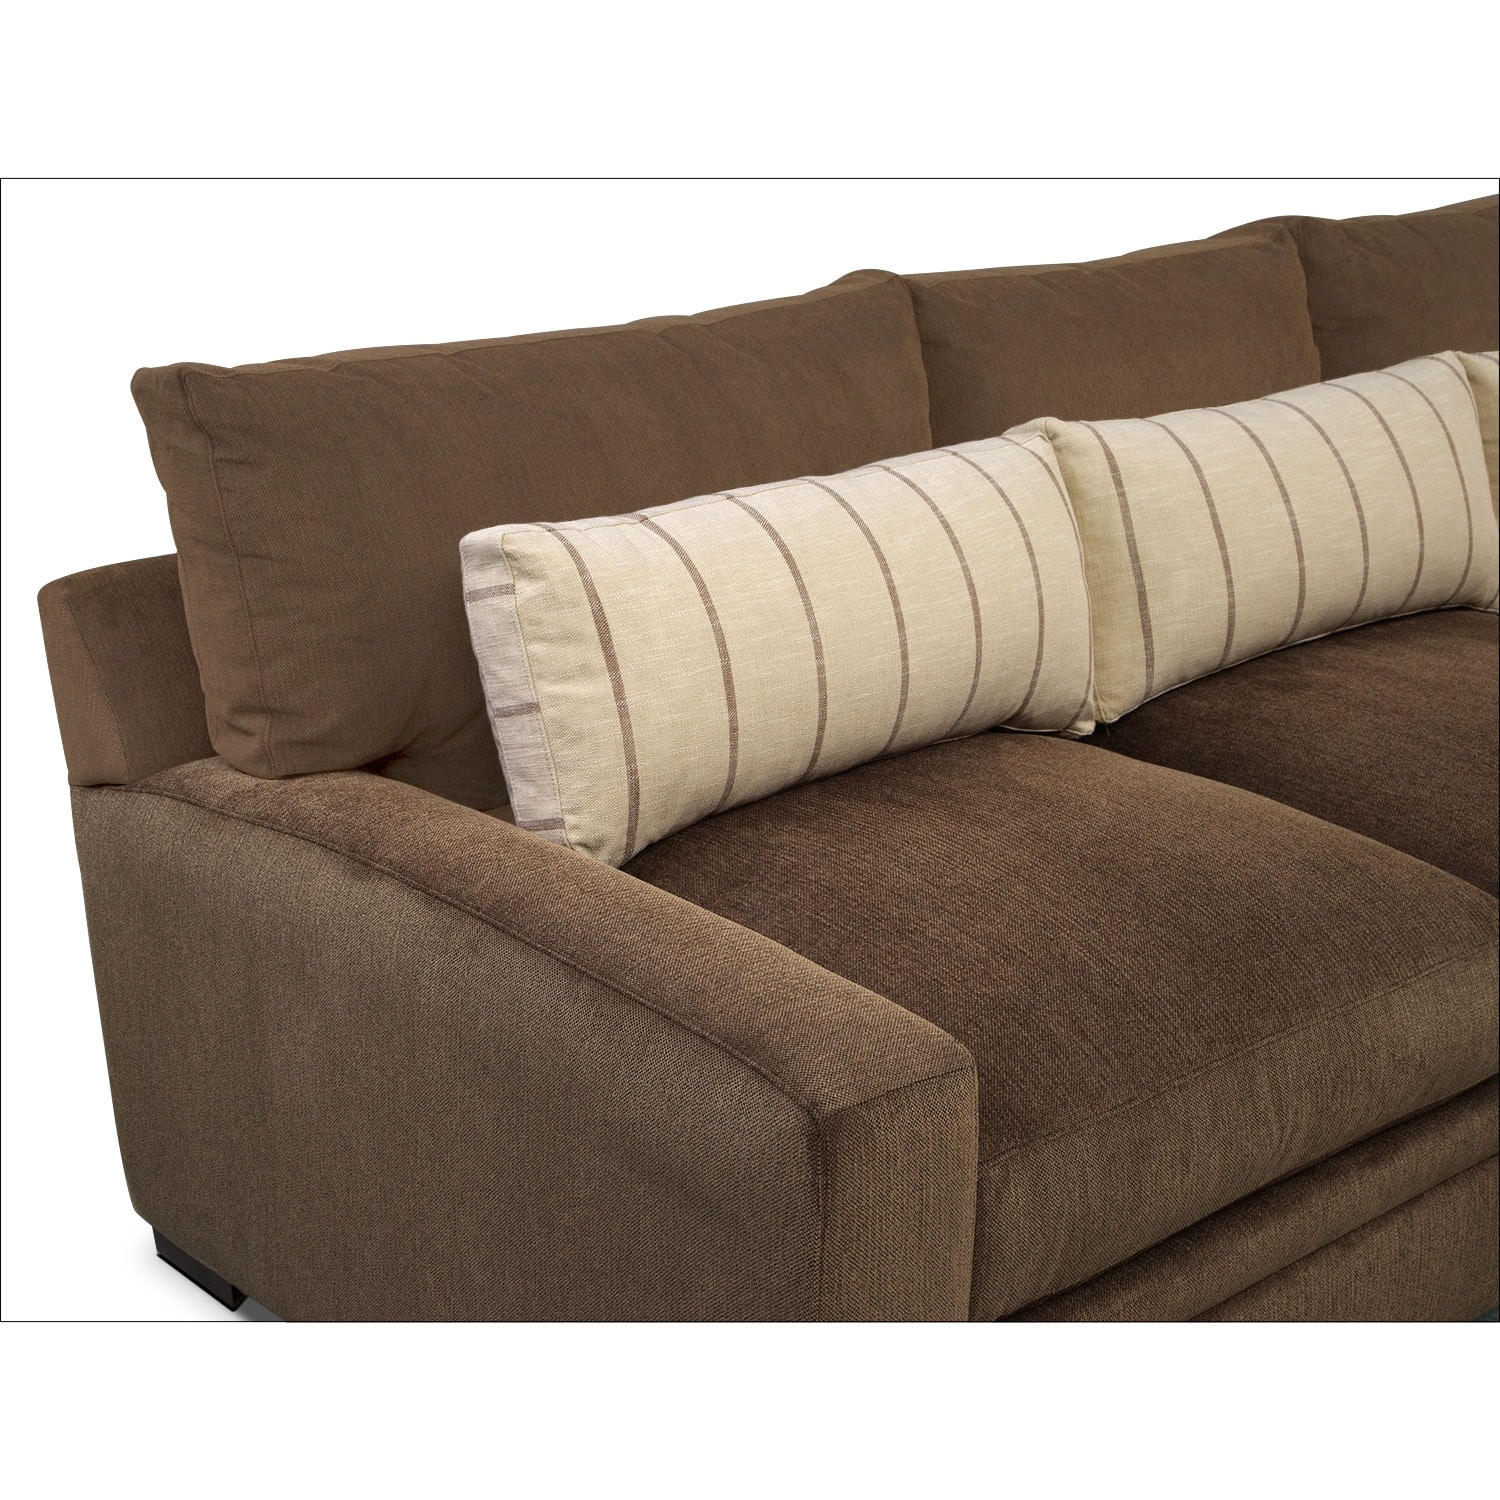 sofa bed releasing value city furniture sofa bed value